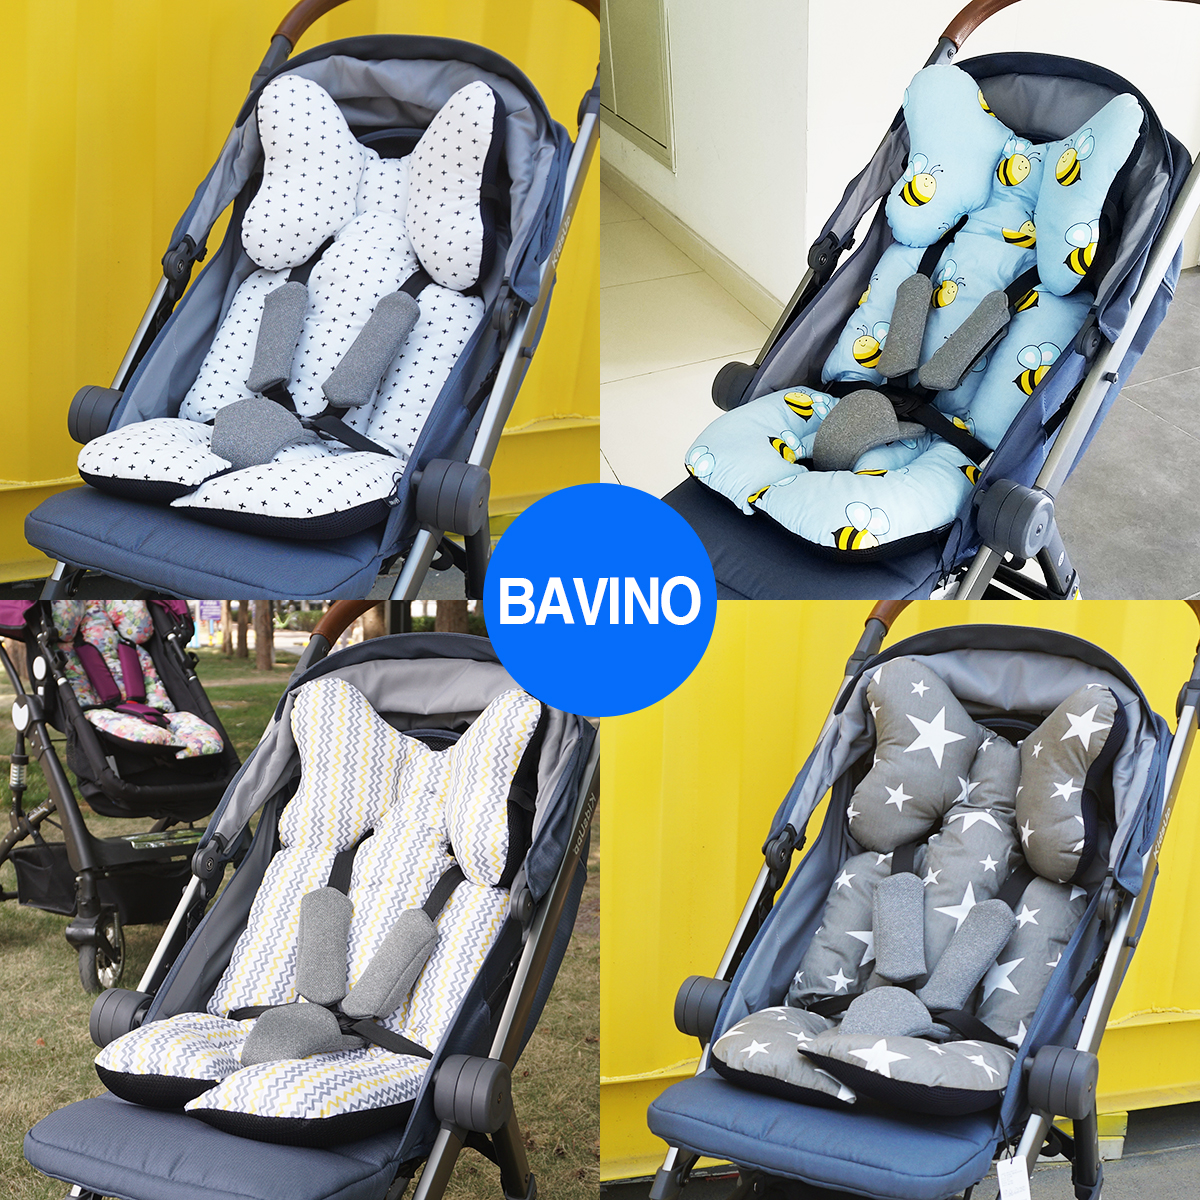 South Korea Bavino Baby Strollers Warm Seat Cushion Four General Dining Car Air Umbrella тетрадь для рисования south korea shopping secret garden key